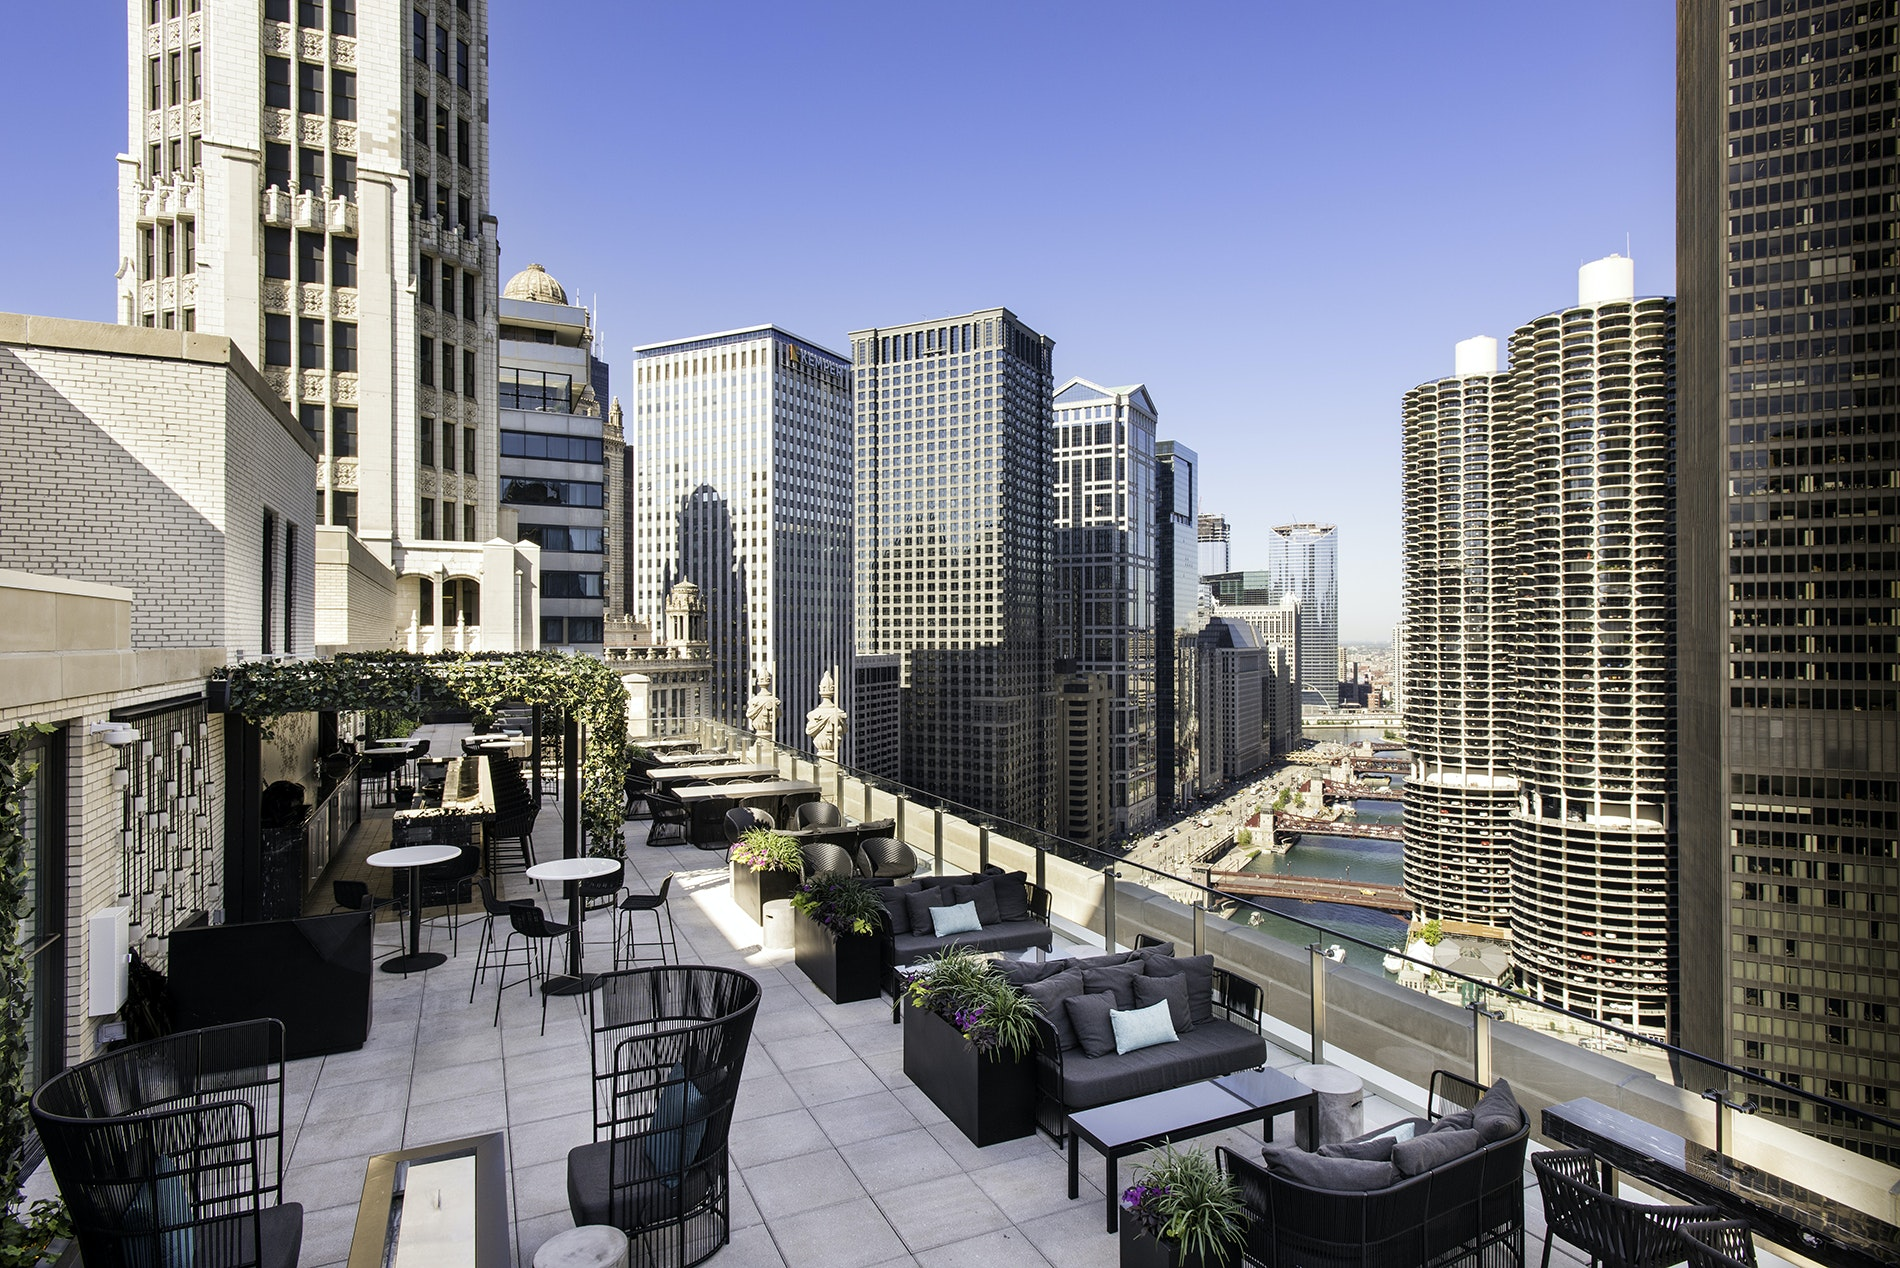 Art deco touches and views of neighboring architectural landmarks abound at the LH Rooftop.